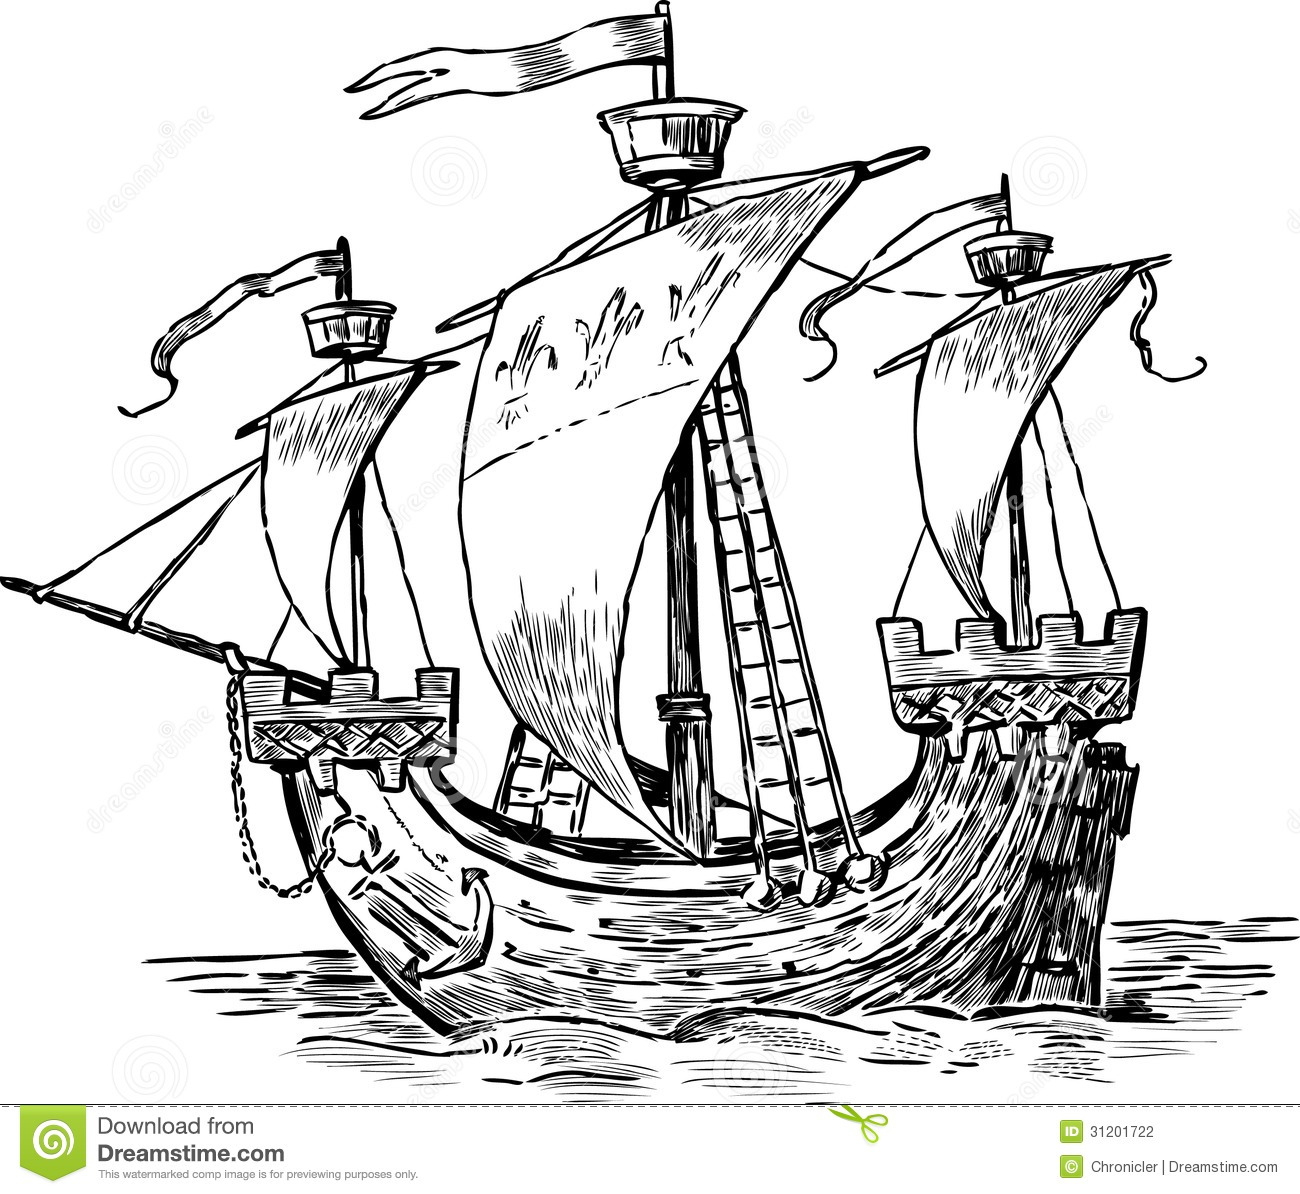 Stock Photography Ancient Sailboat Vector Drawing Old Ship Under Sail Image31201722 on sail cartoon clip art